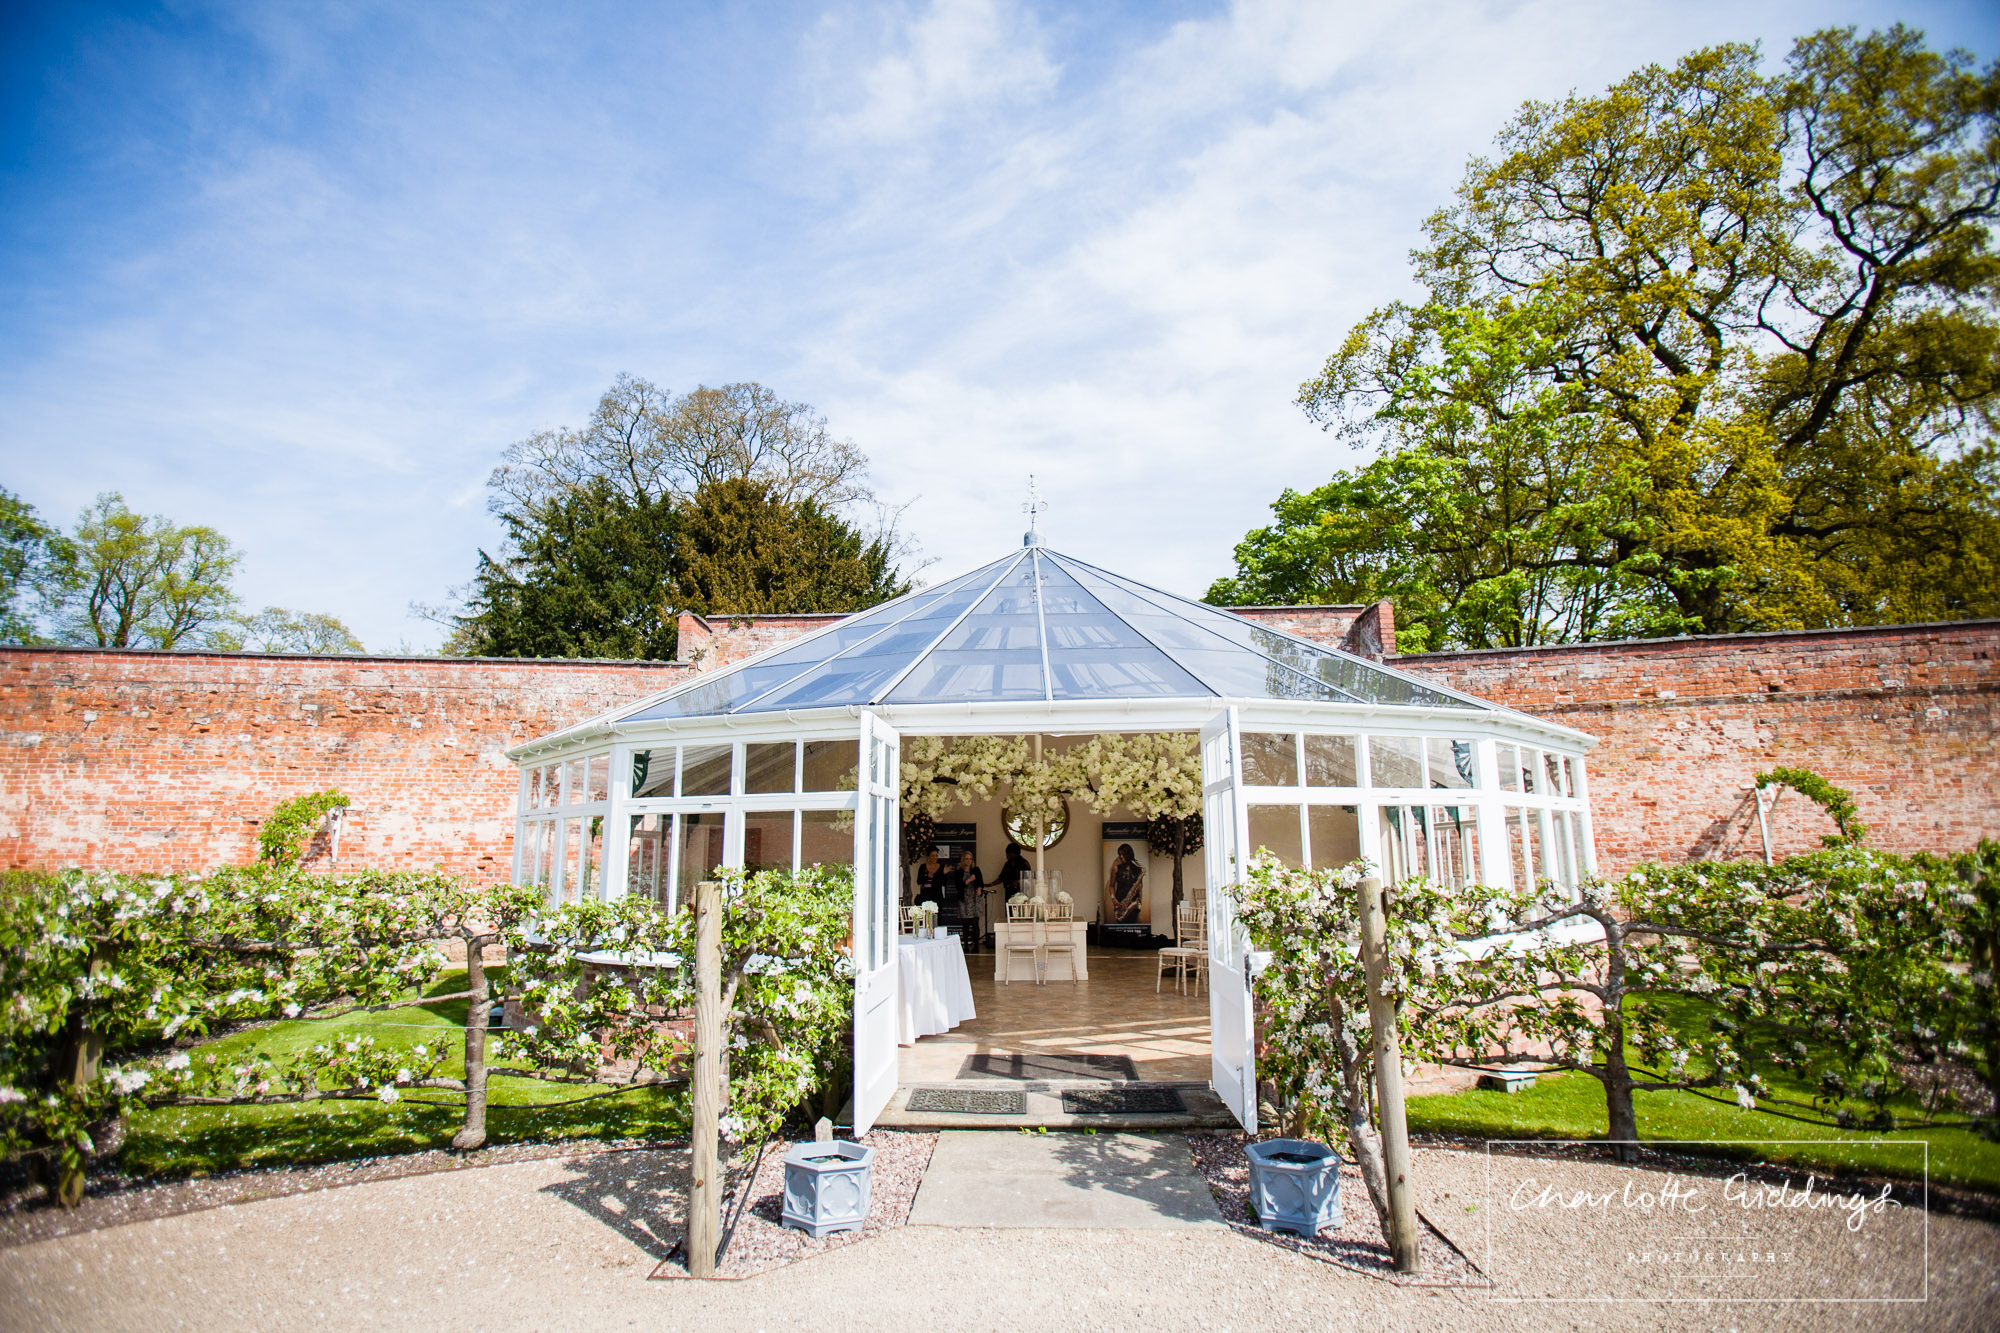 combermere abbey glasshouse in spring - shropshie wedding photographer